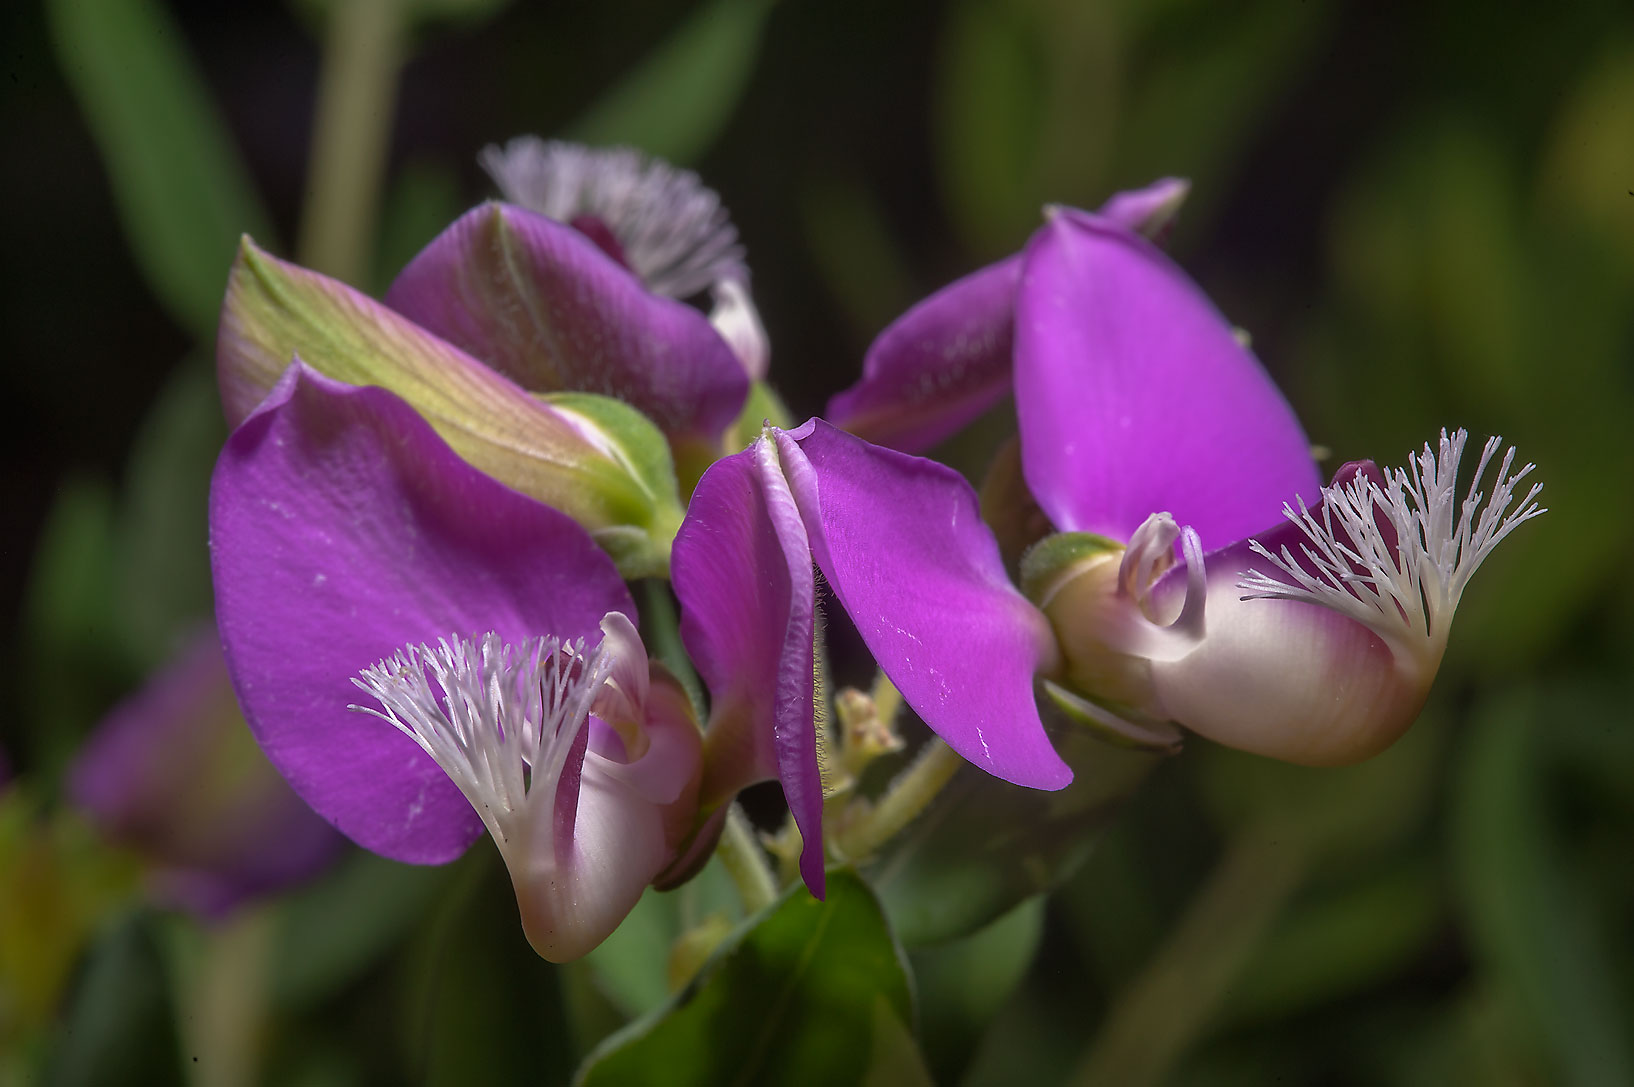 Sweet-pea shrub (Polygala x dalmasiana) in Mercer...Gardens. Humble (Houston area), Texas